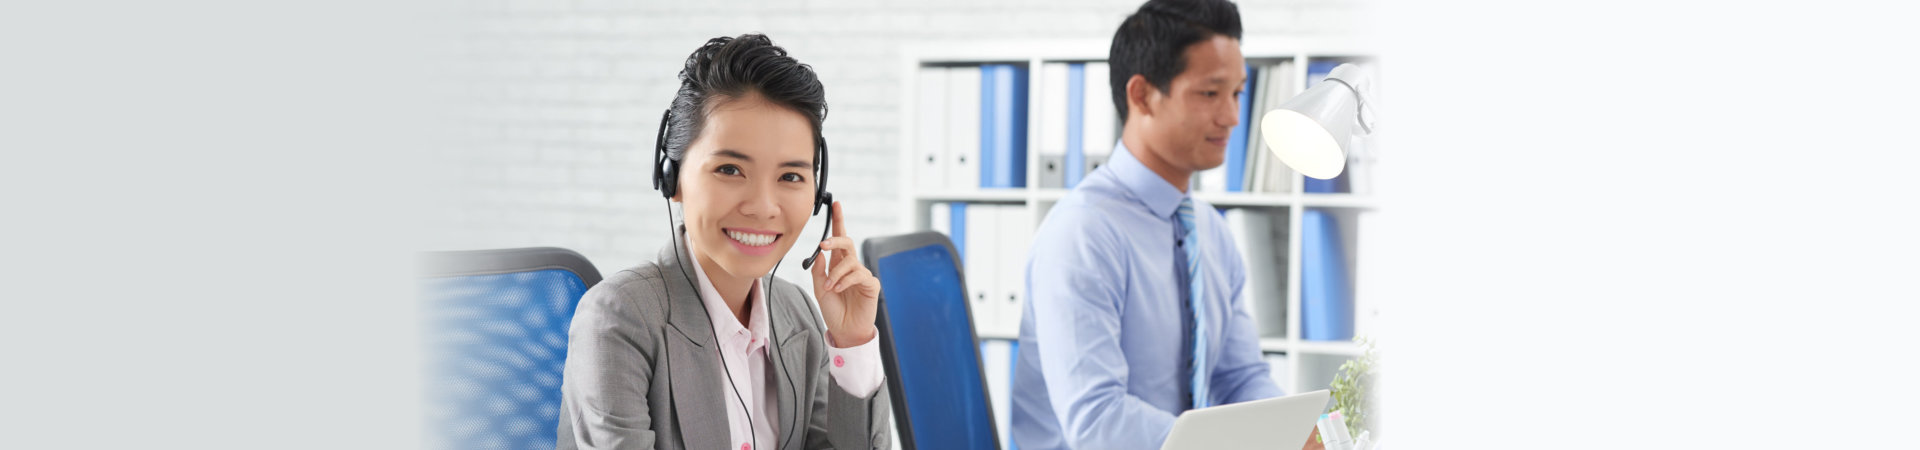 cheerful business woman in headset and man working in office